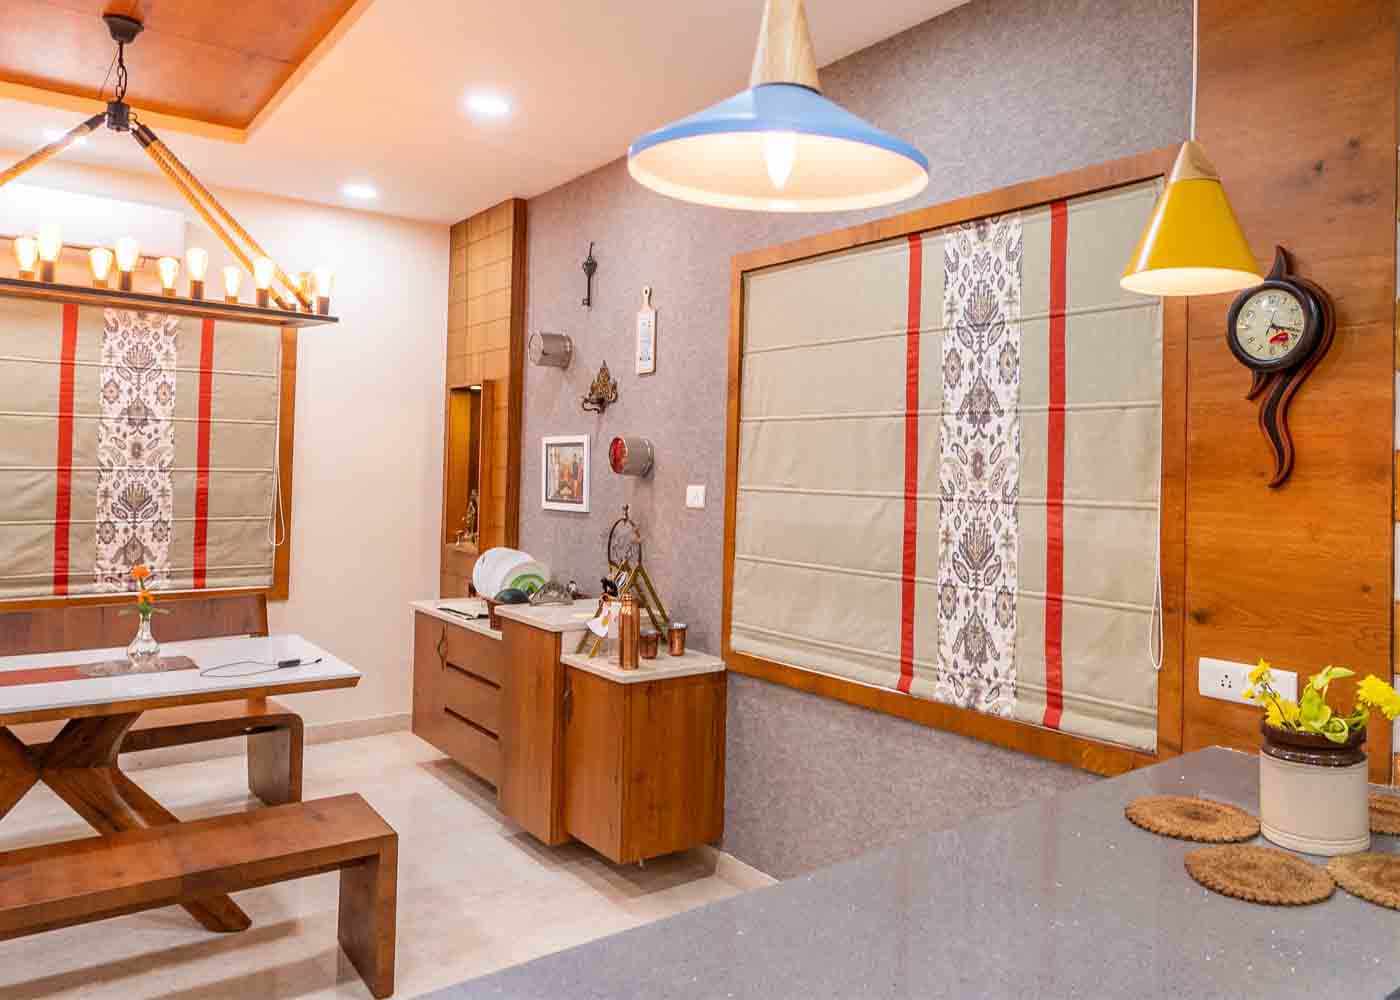 Top 5 Interior Design Trends That Are Likely to Dominate in 2020